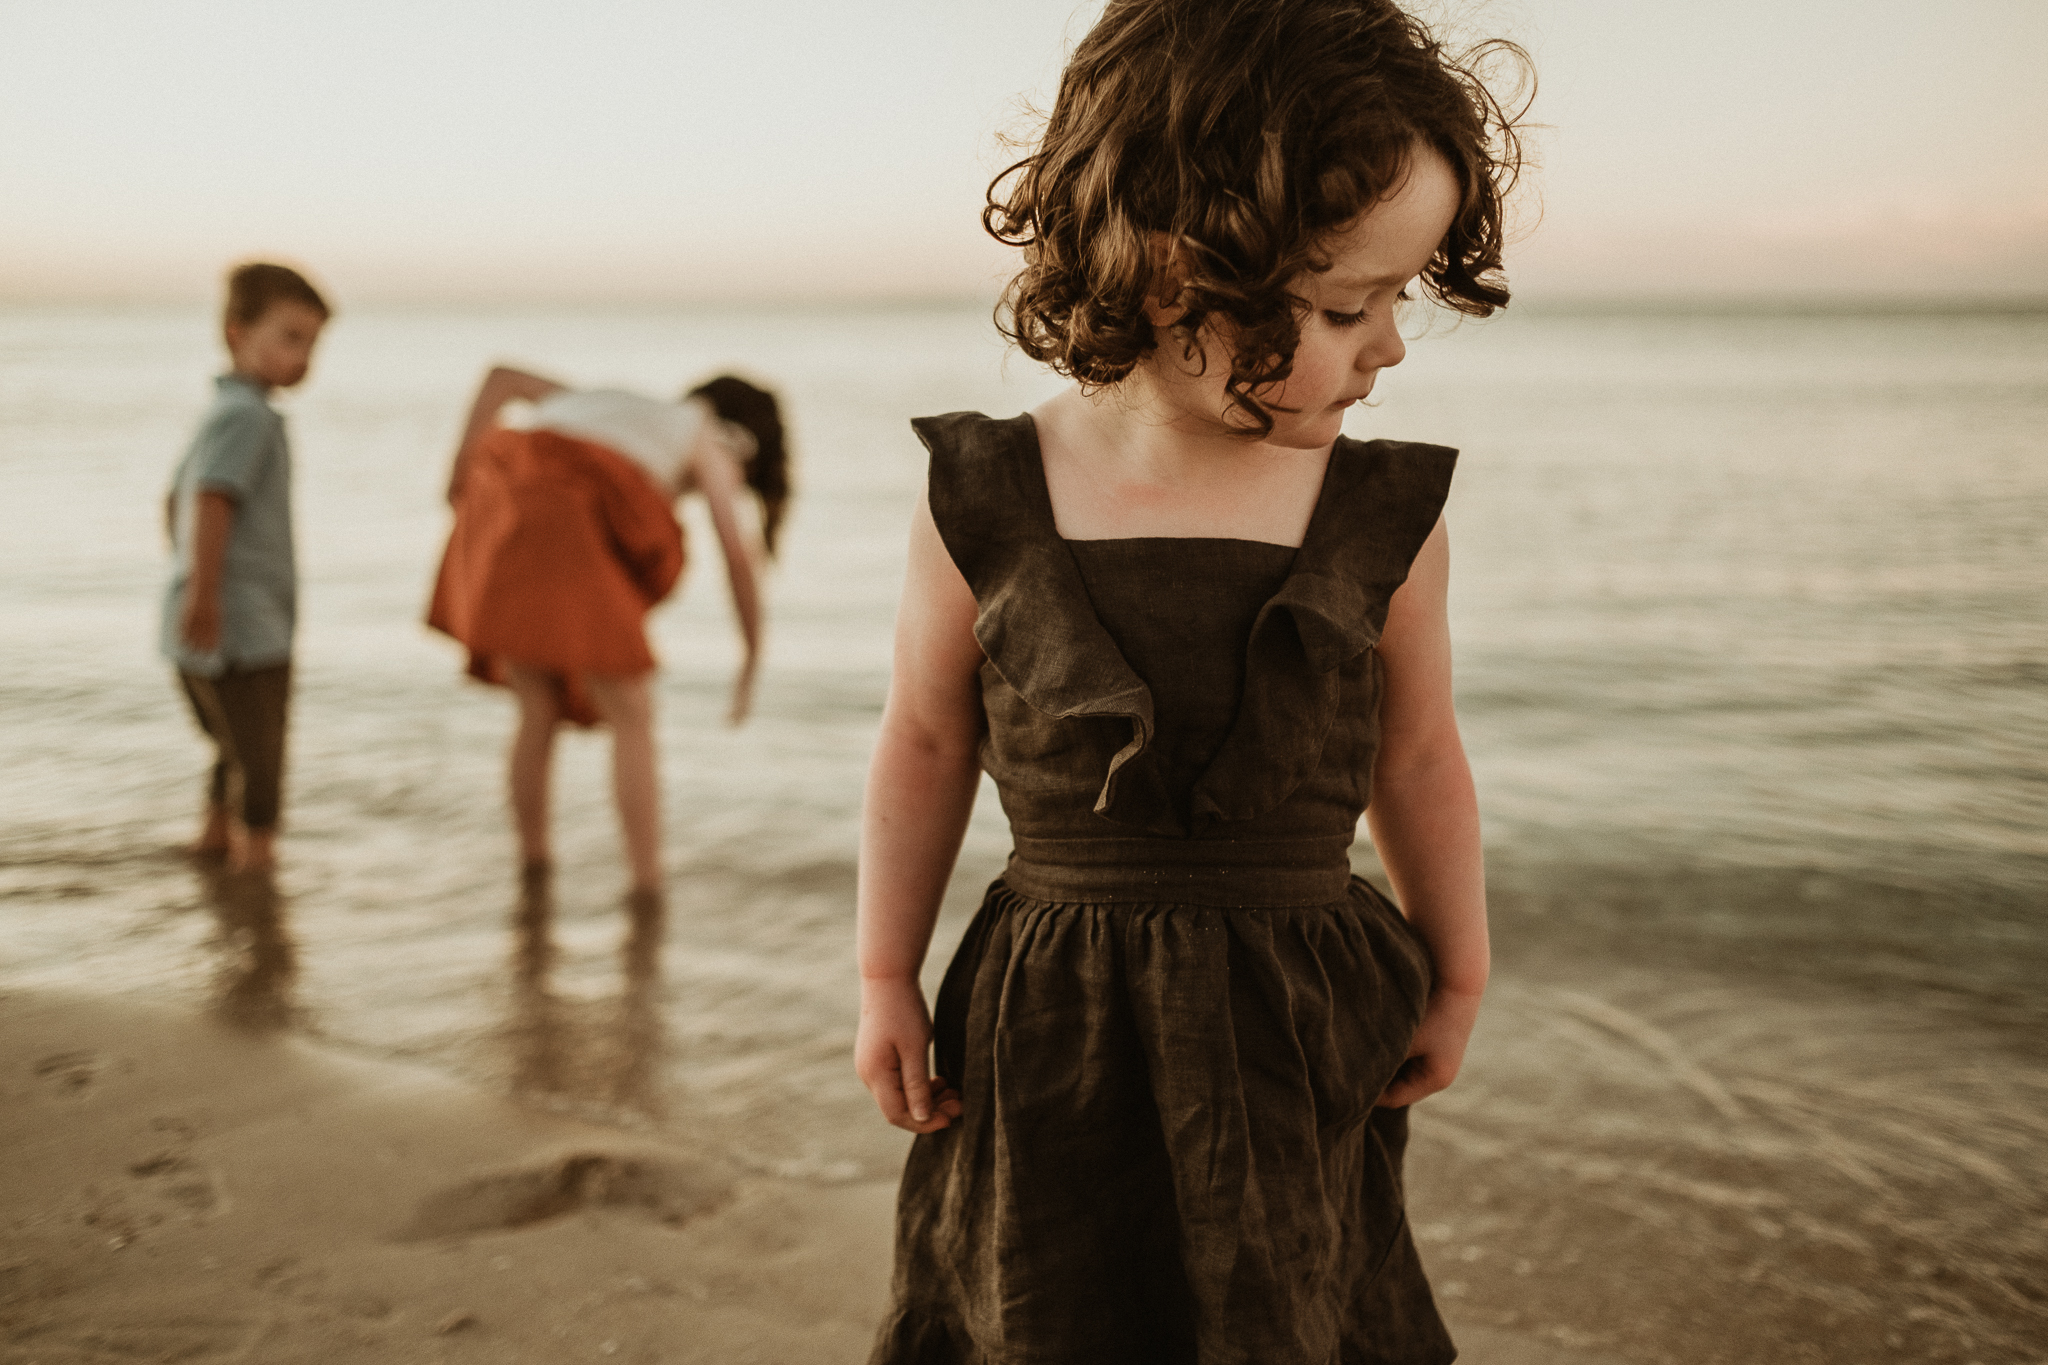 Melbourne Family Photography (38 of 39).jpg